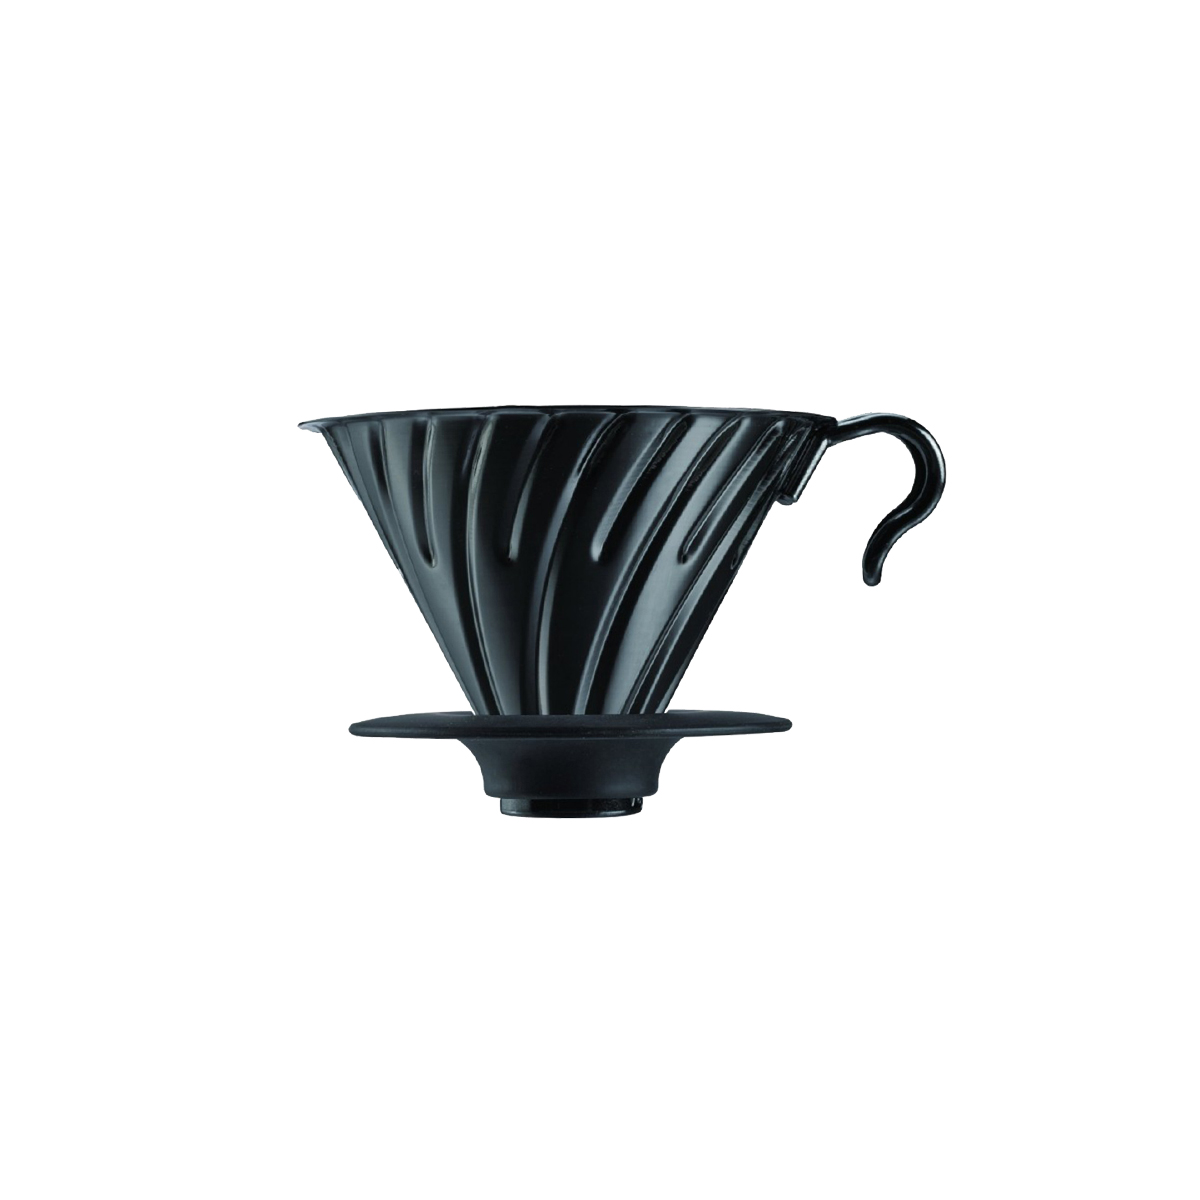 Hario V60 Metal Coffee Dripper Black 02 VDM-02BC